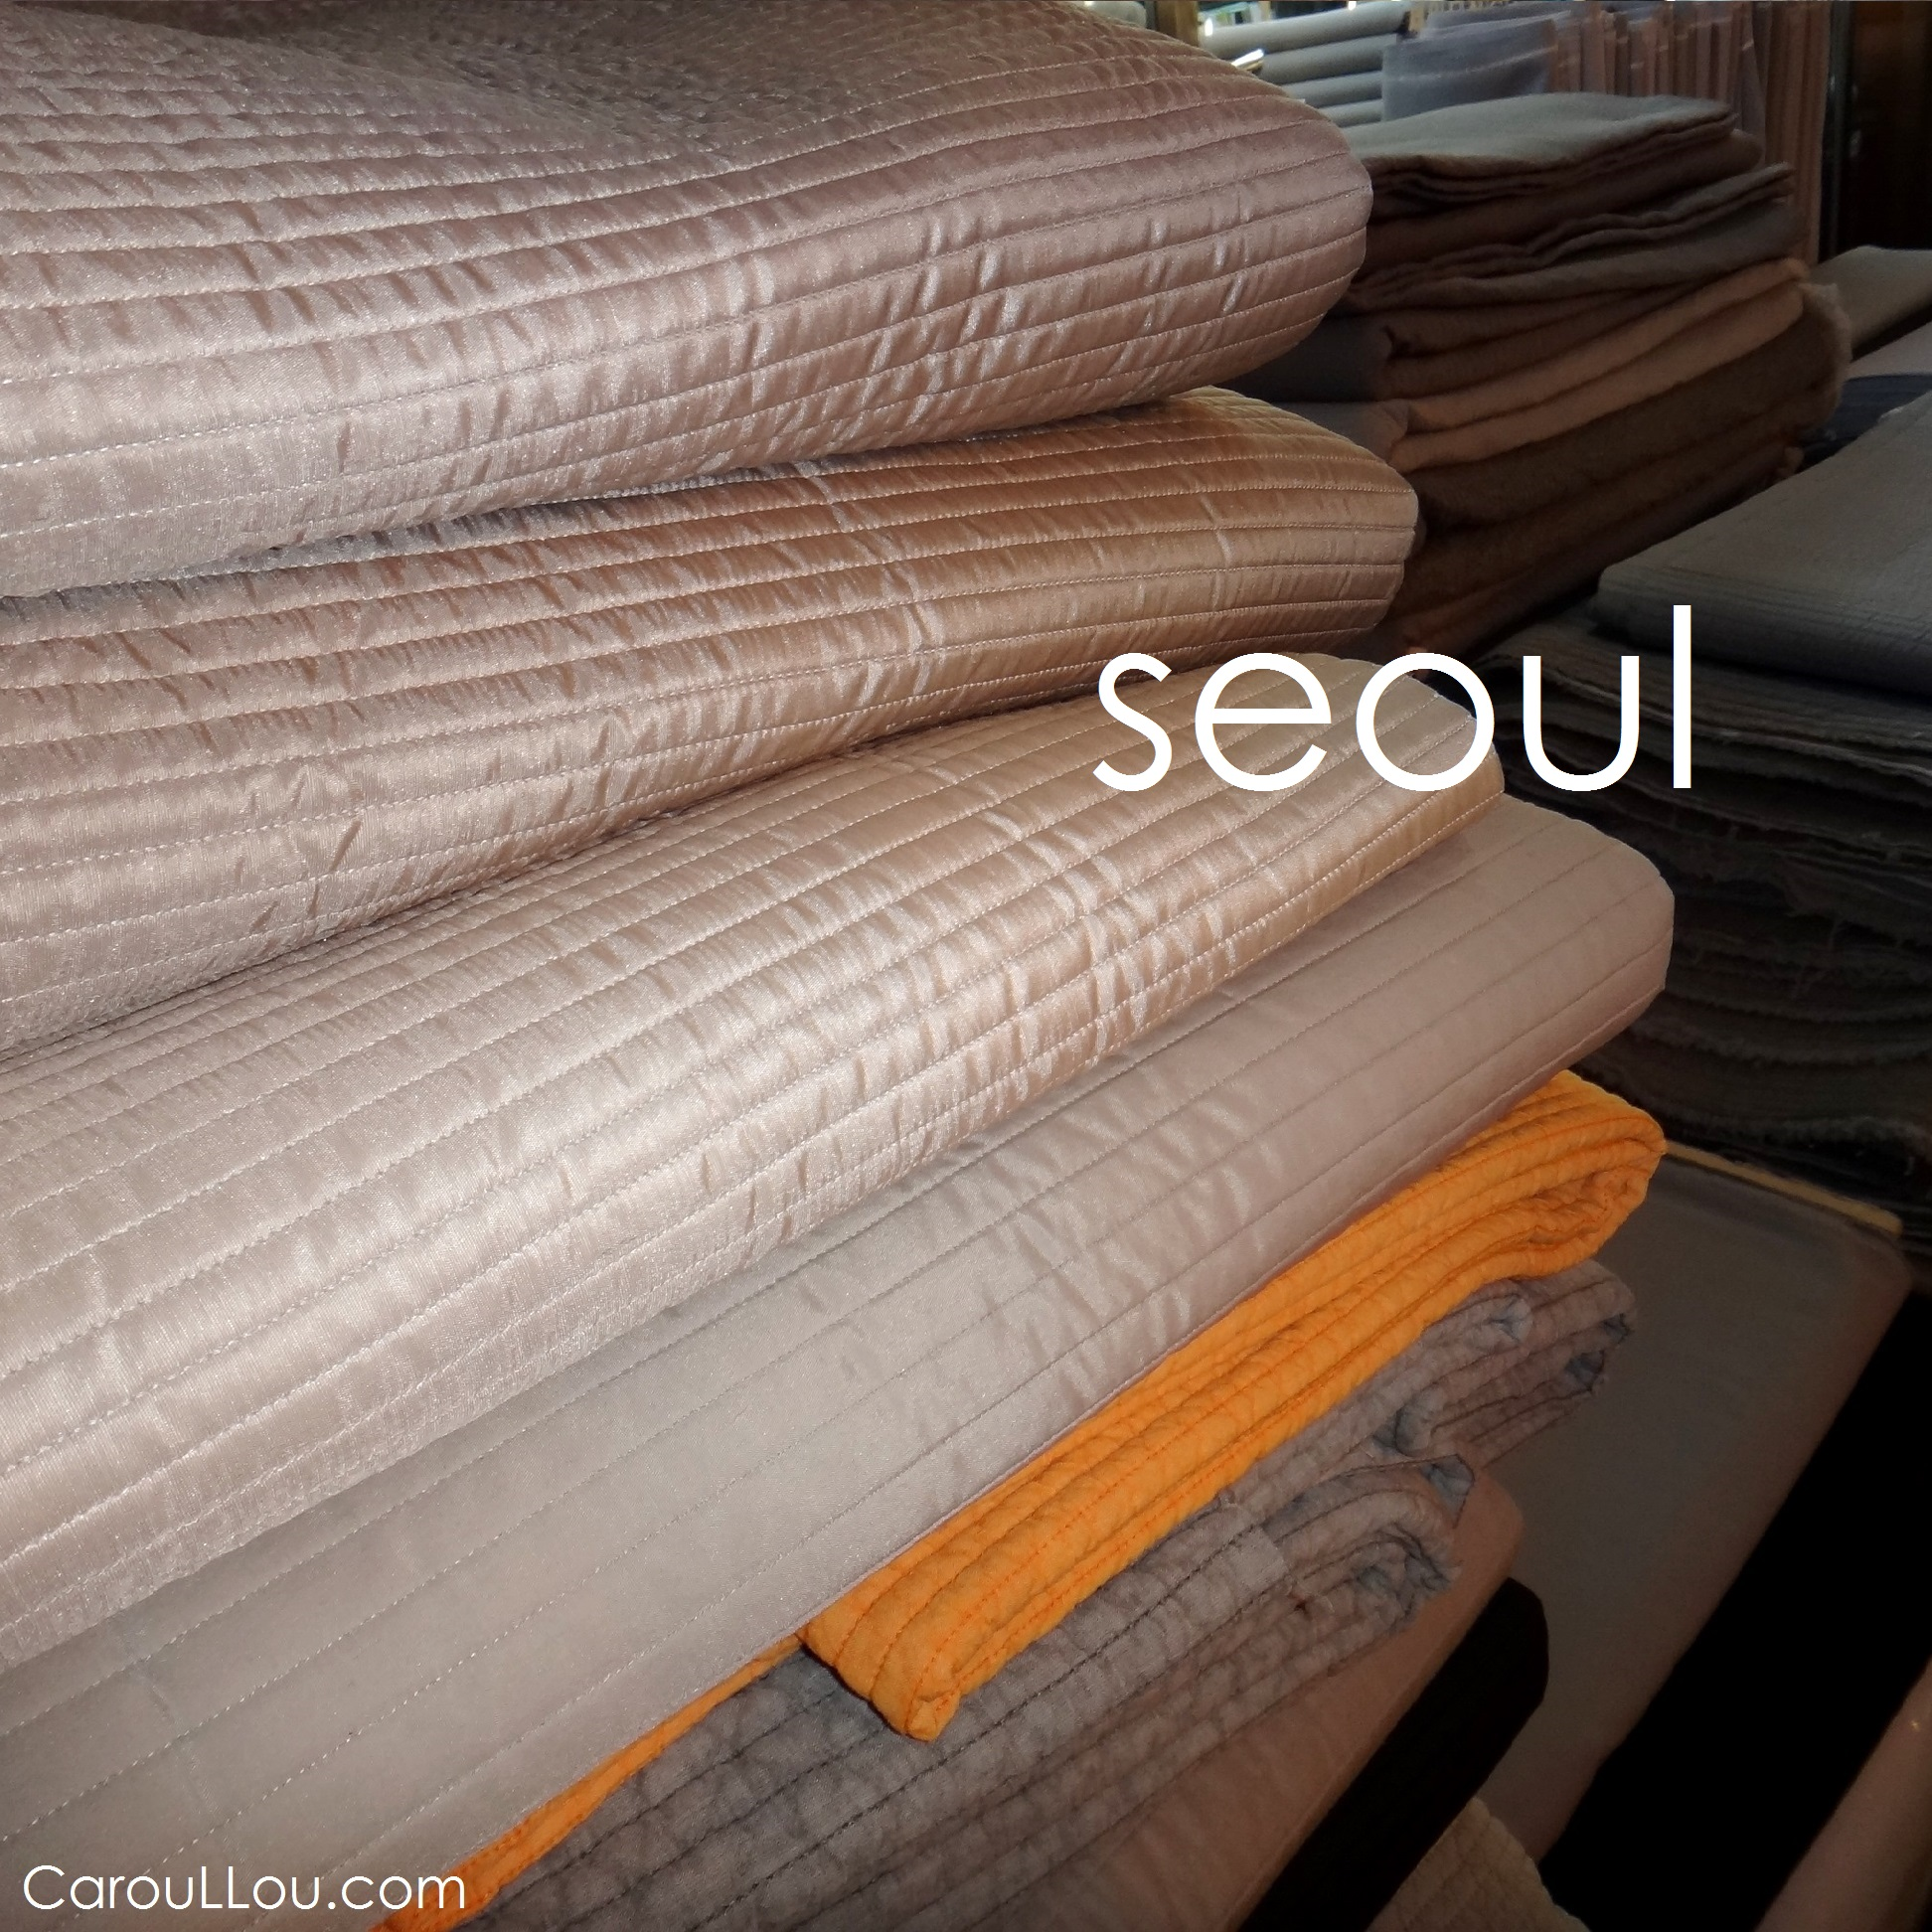 CarouLLou.com Carou LLou in Seoul South Korea material munks +-